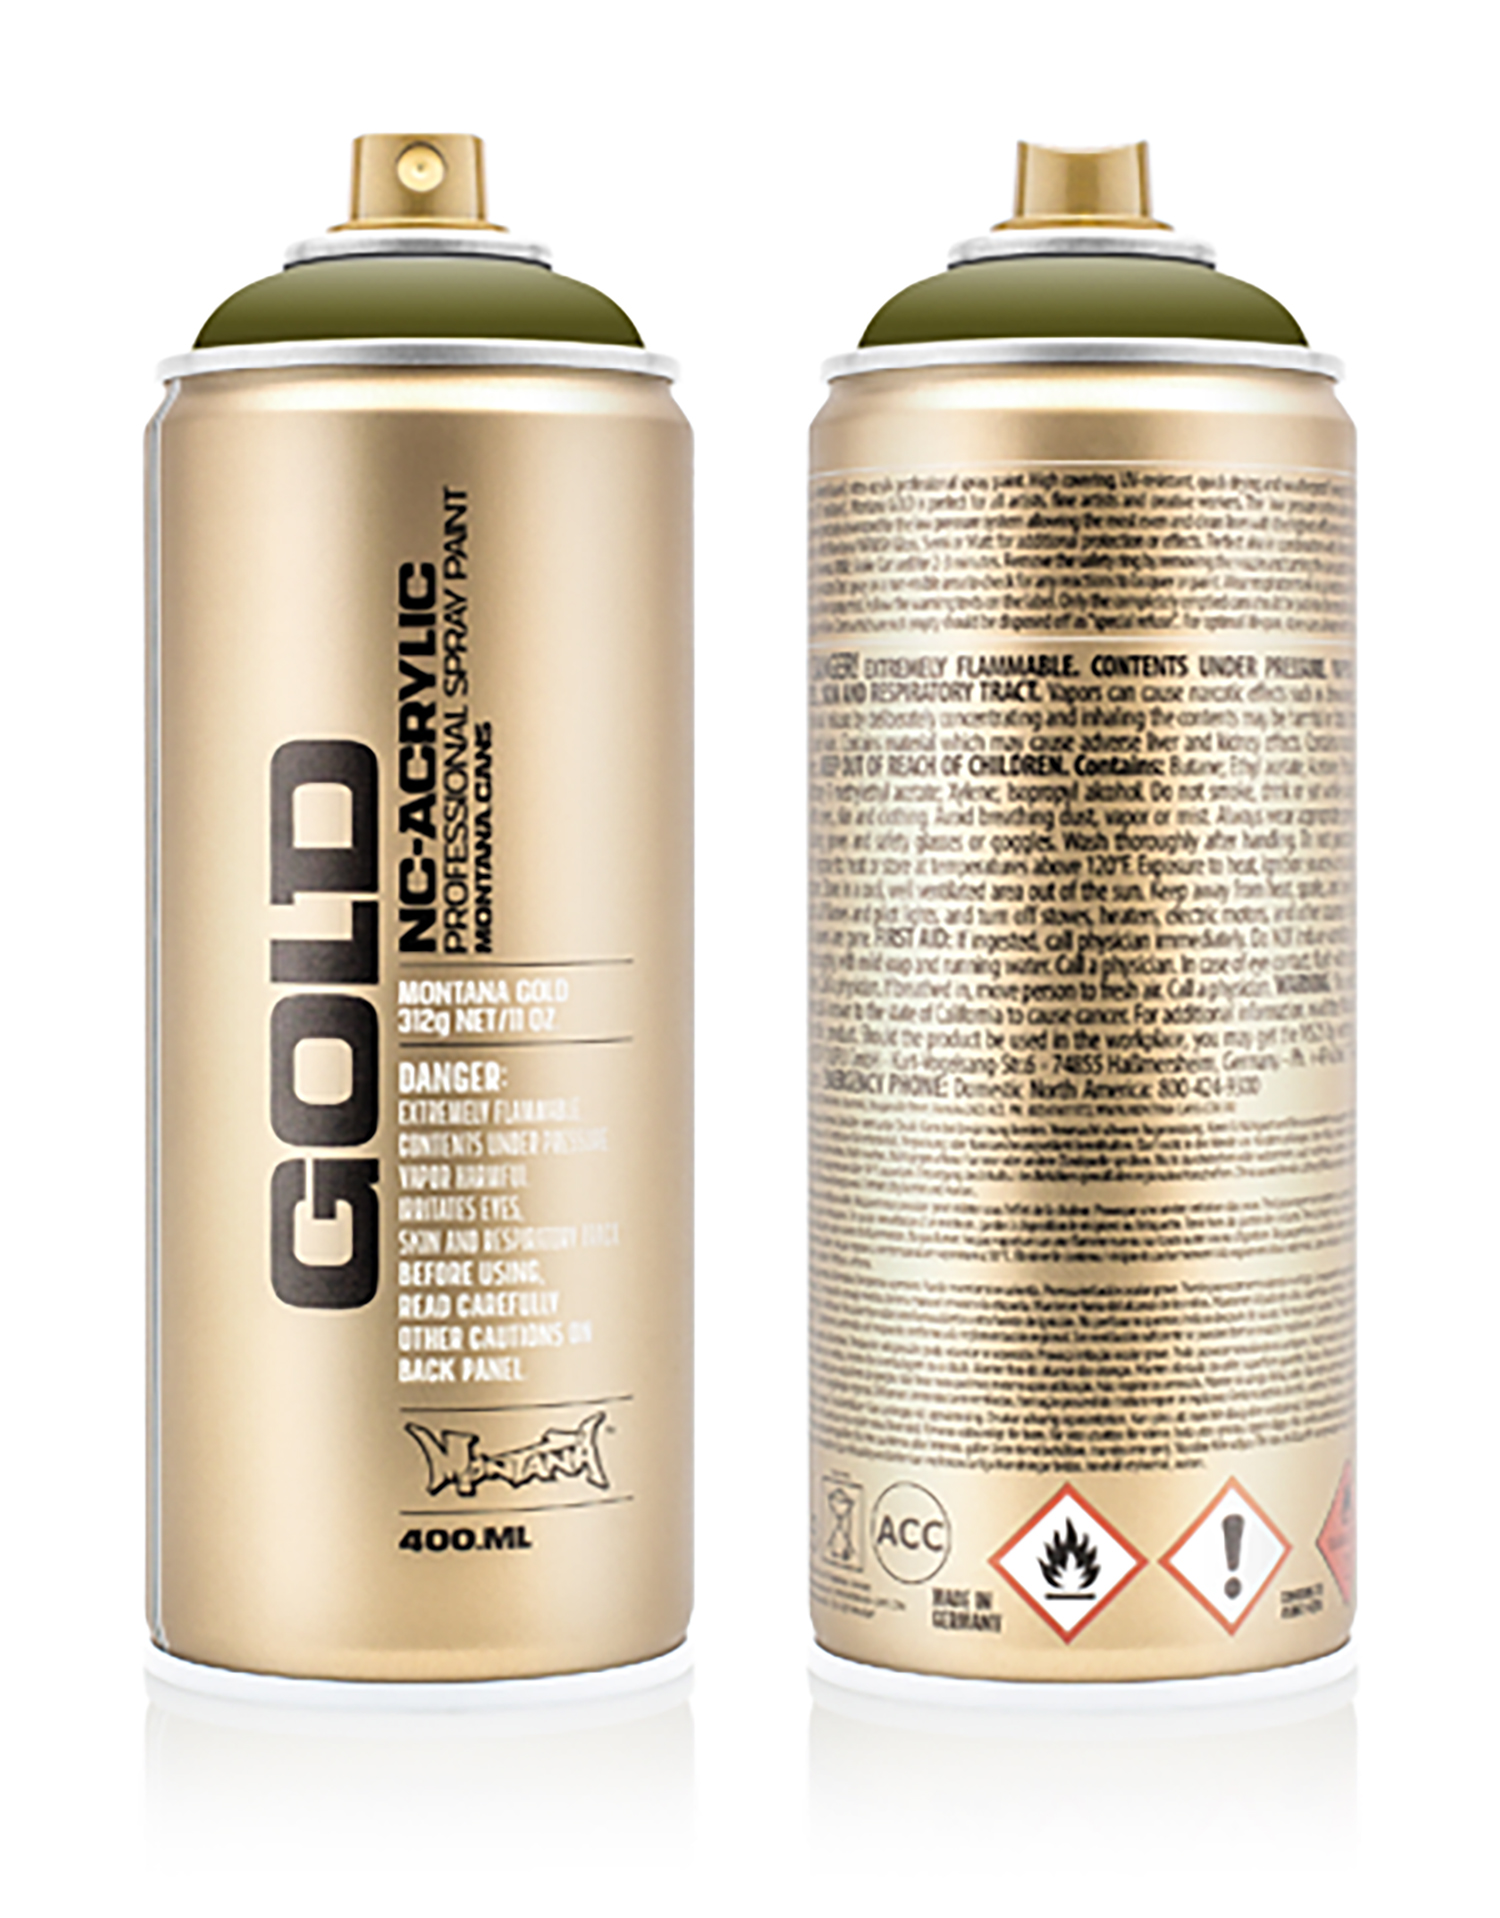 MONTANA-GOLD-SPRAY-400ML-G-1150